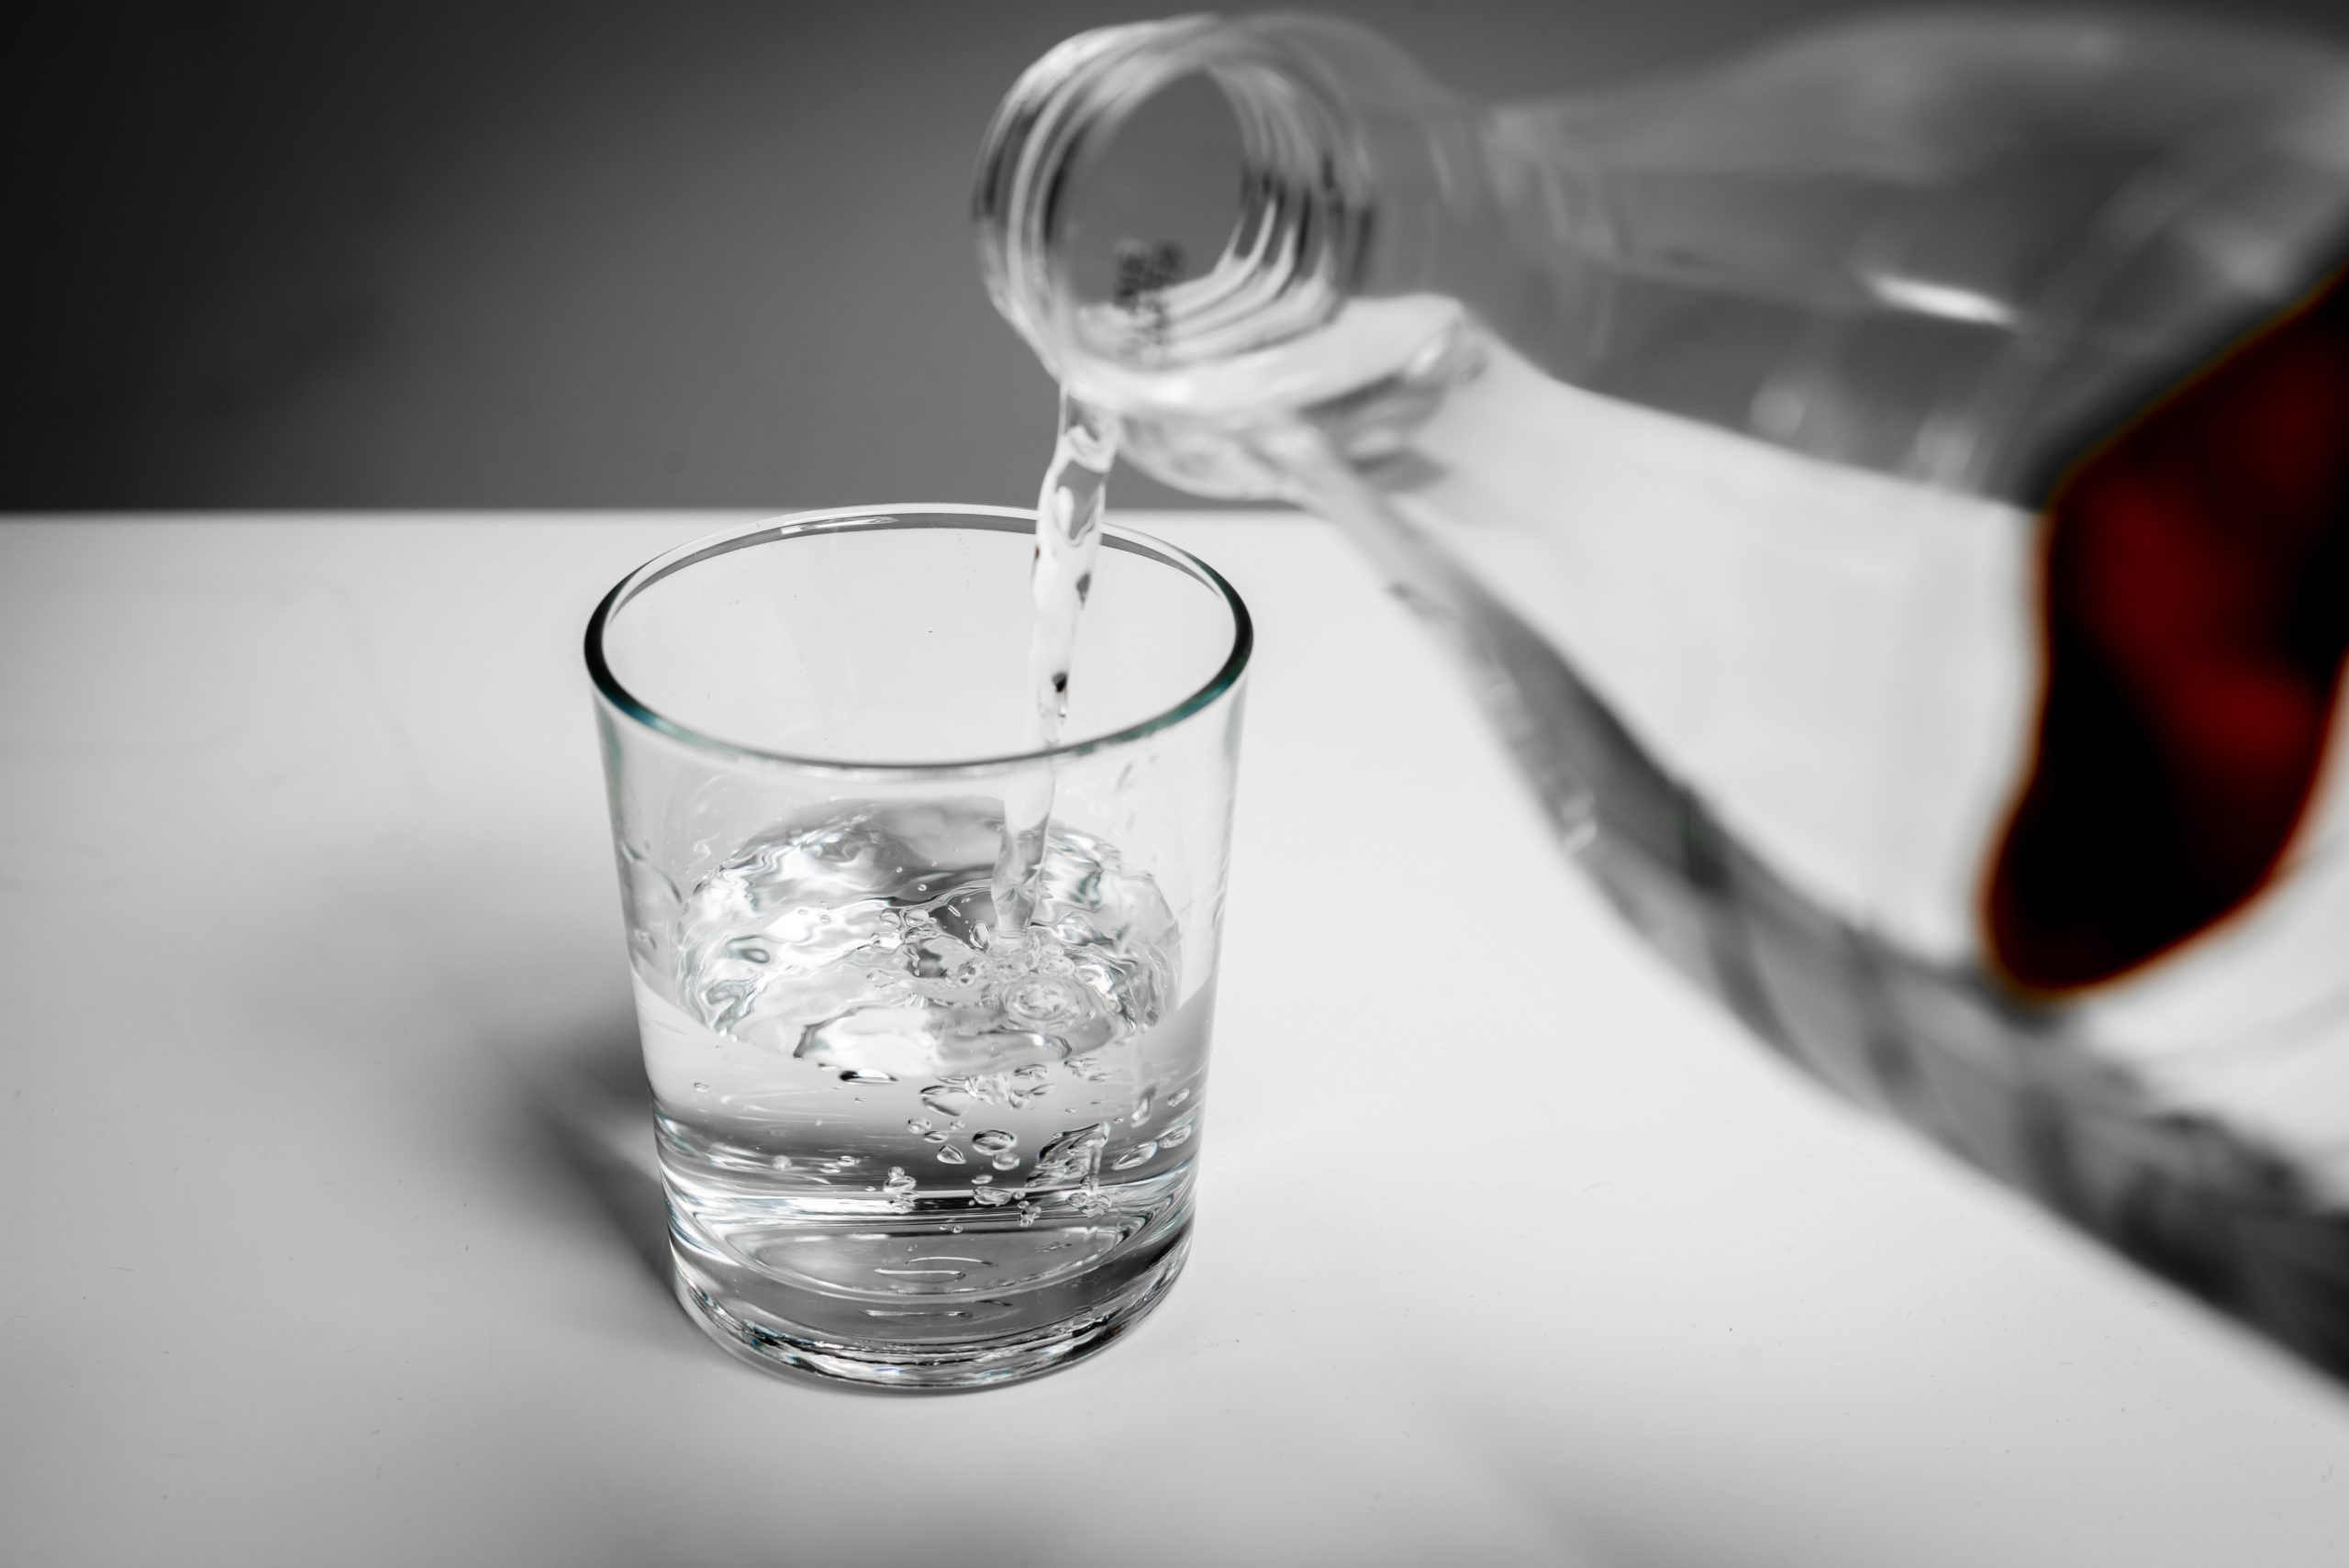 Pouring water into a glass from a bottle. The price is rising. Quenches thirst. Problems with water in some countries.The glass is filled with water.